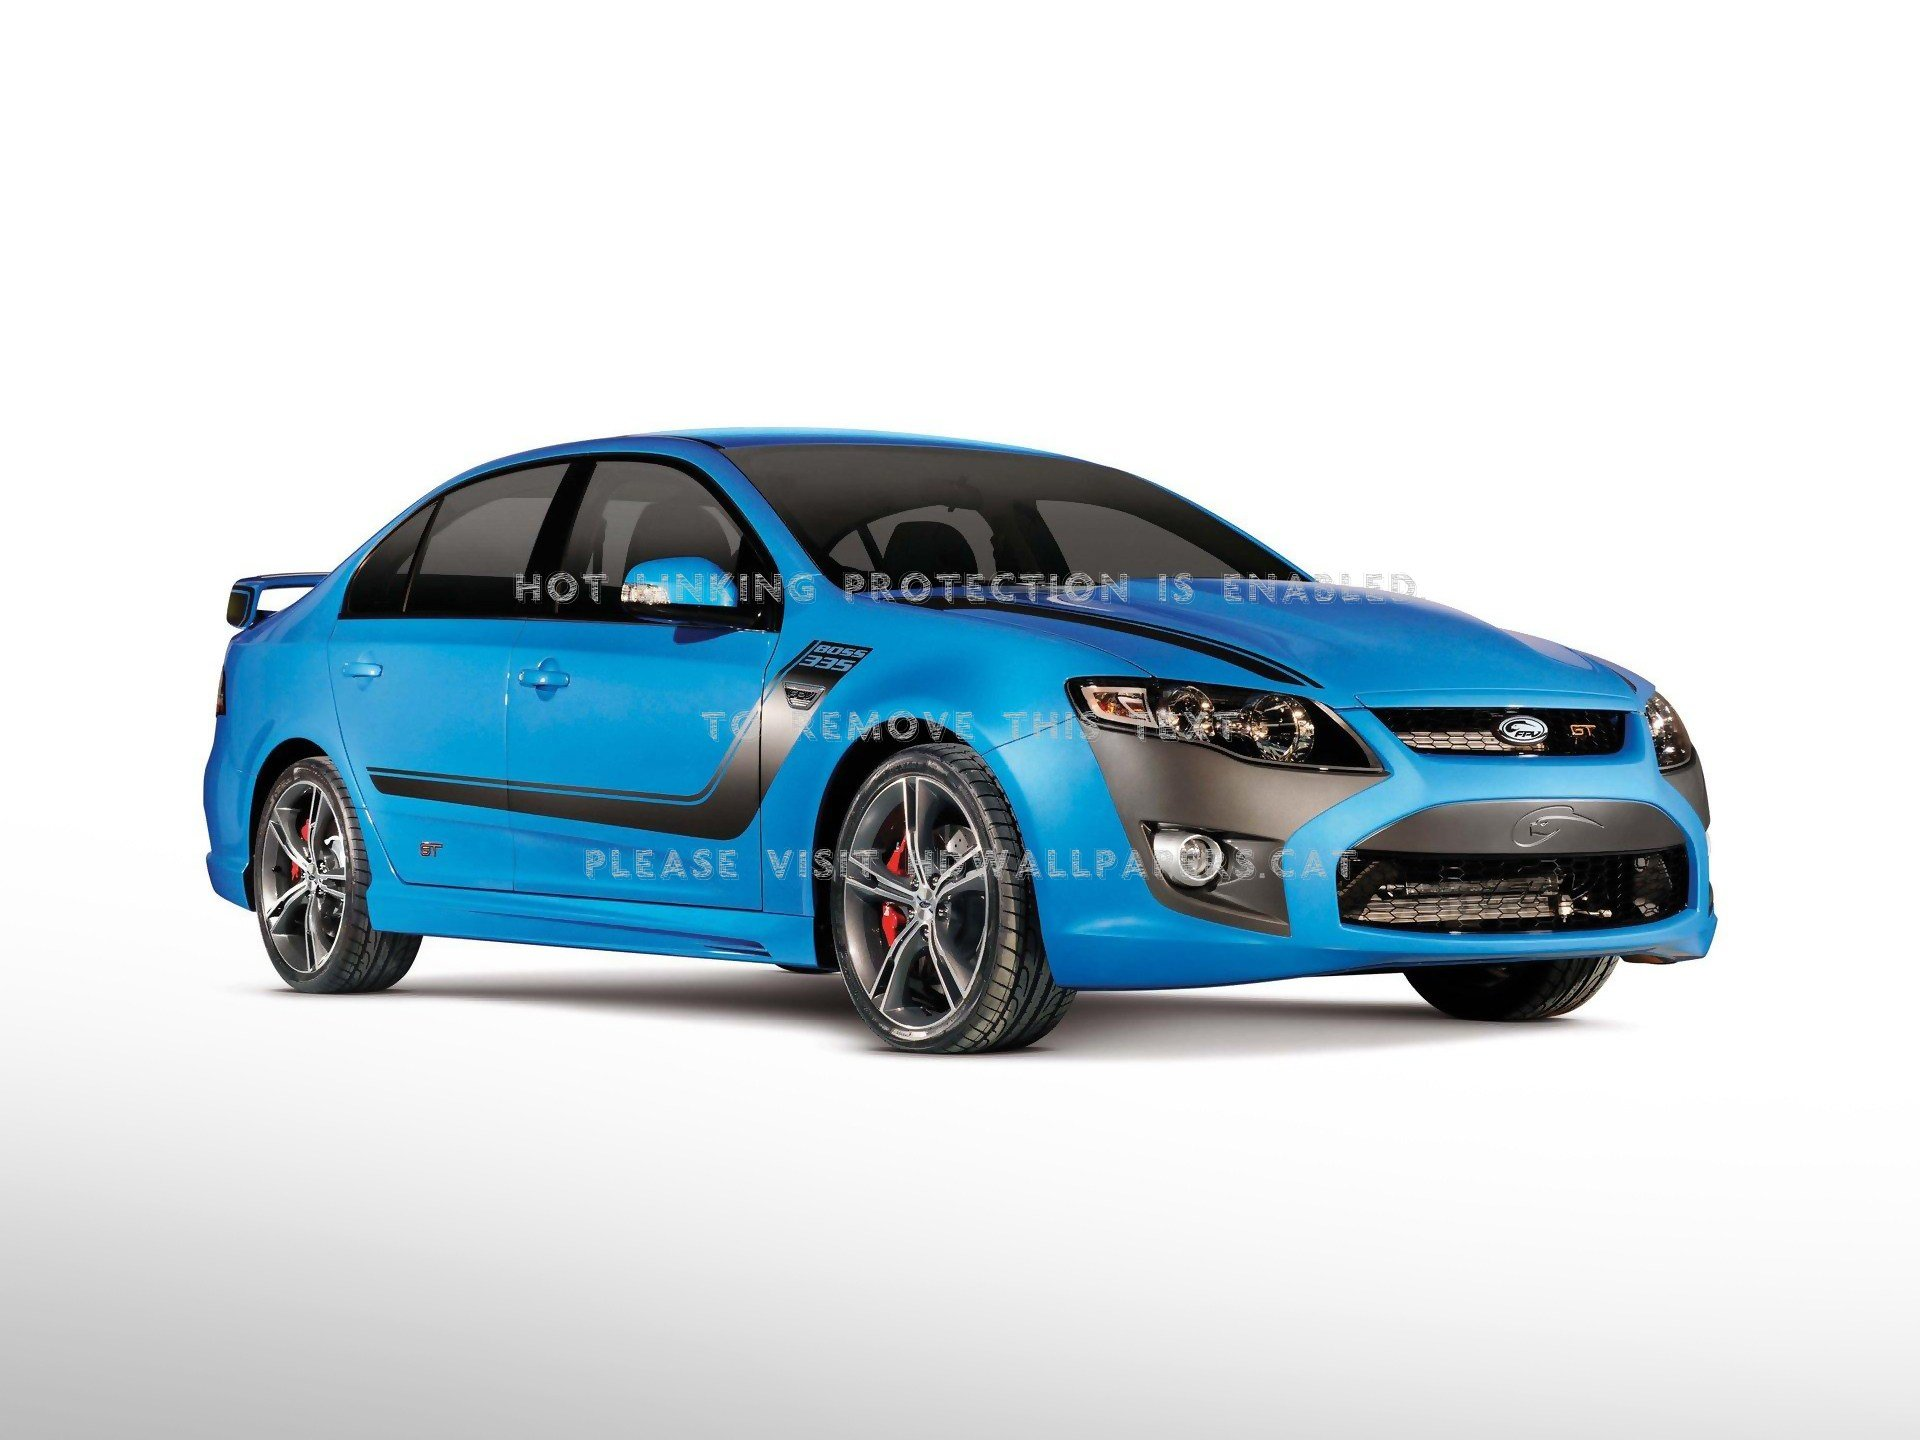 New Ford Falcon Fpv Gt Blue Car Hd Wallpaper 1886561 On This Month